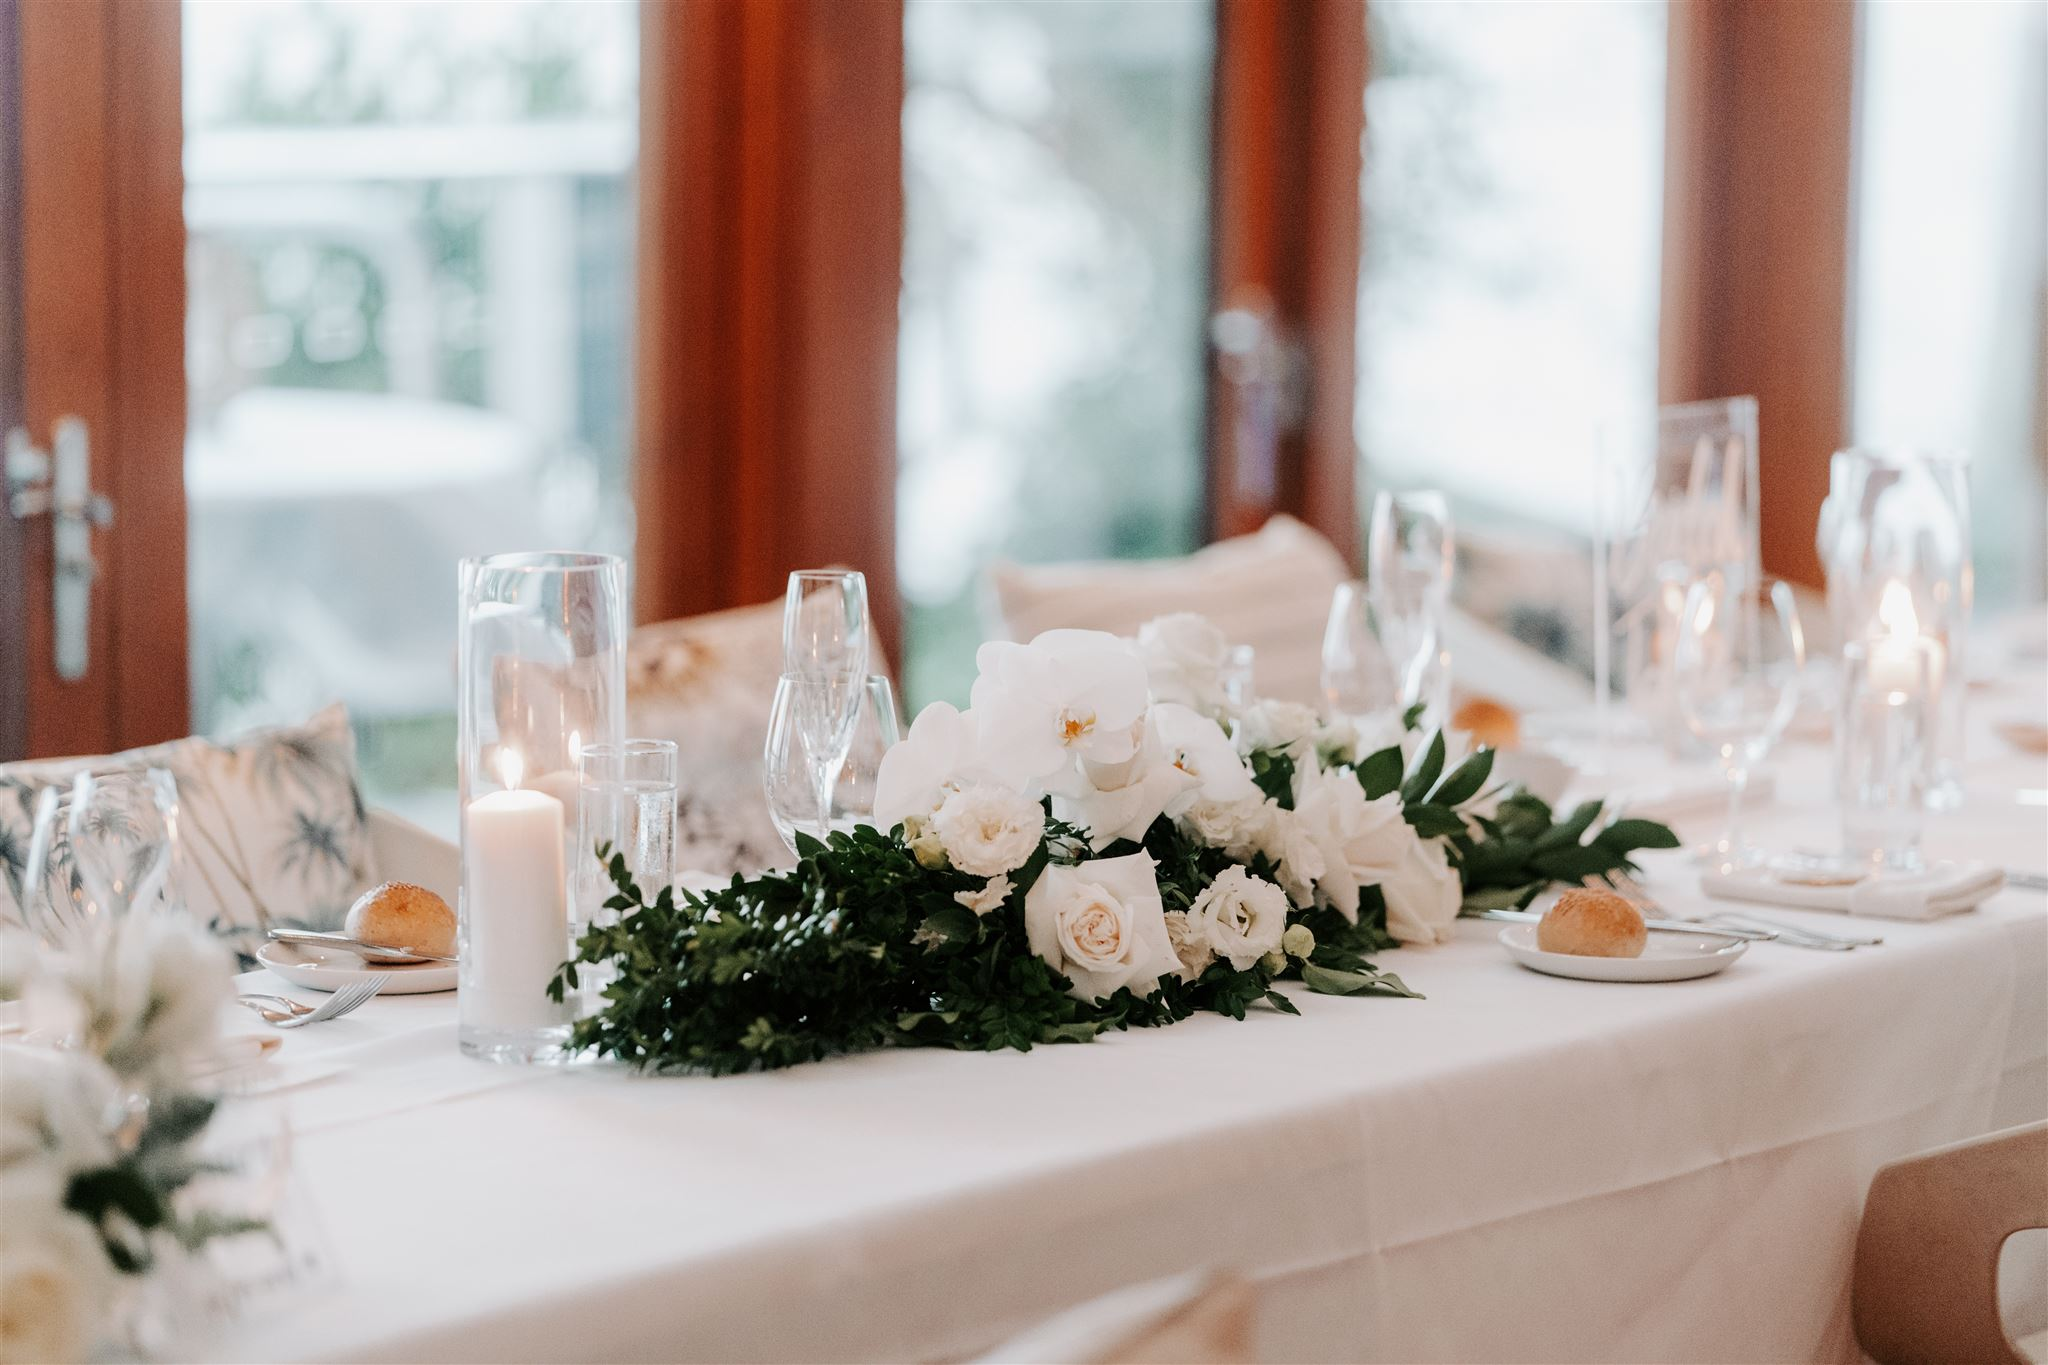 Reception table garland with tropical leaves and white blooms